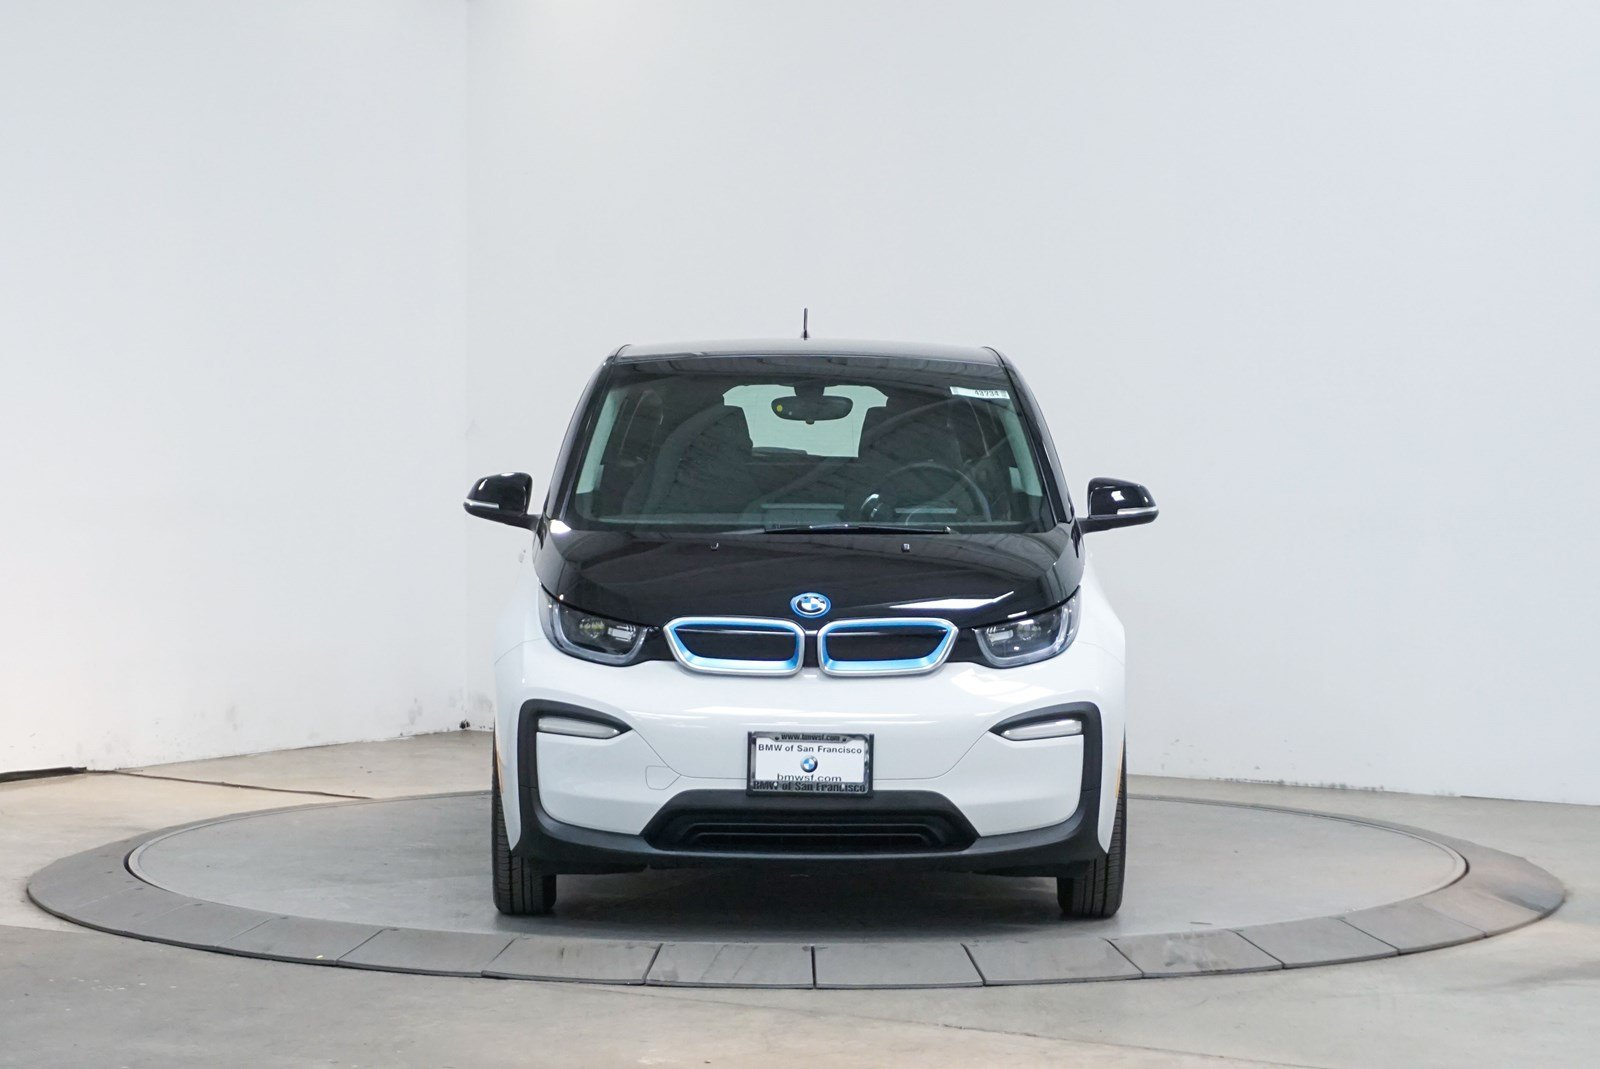 Certified Pre-Owned 2018 BMW i3 4DR HB 94 AH